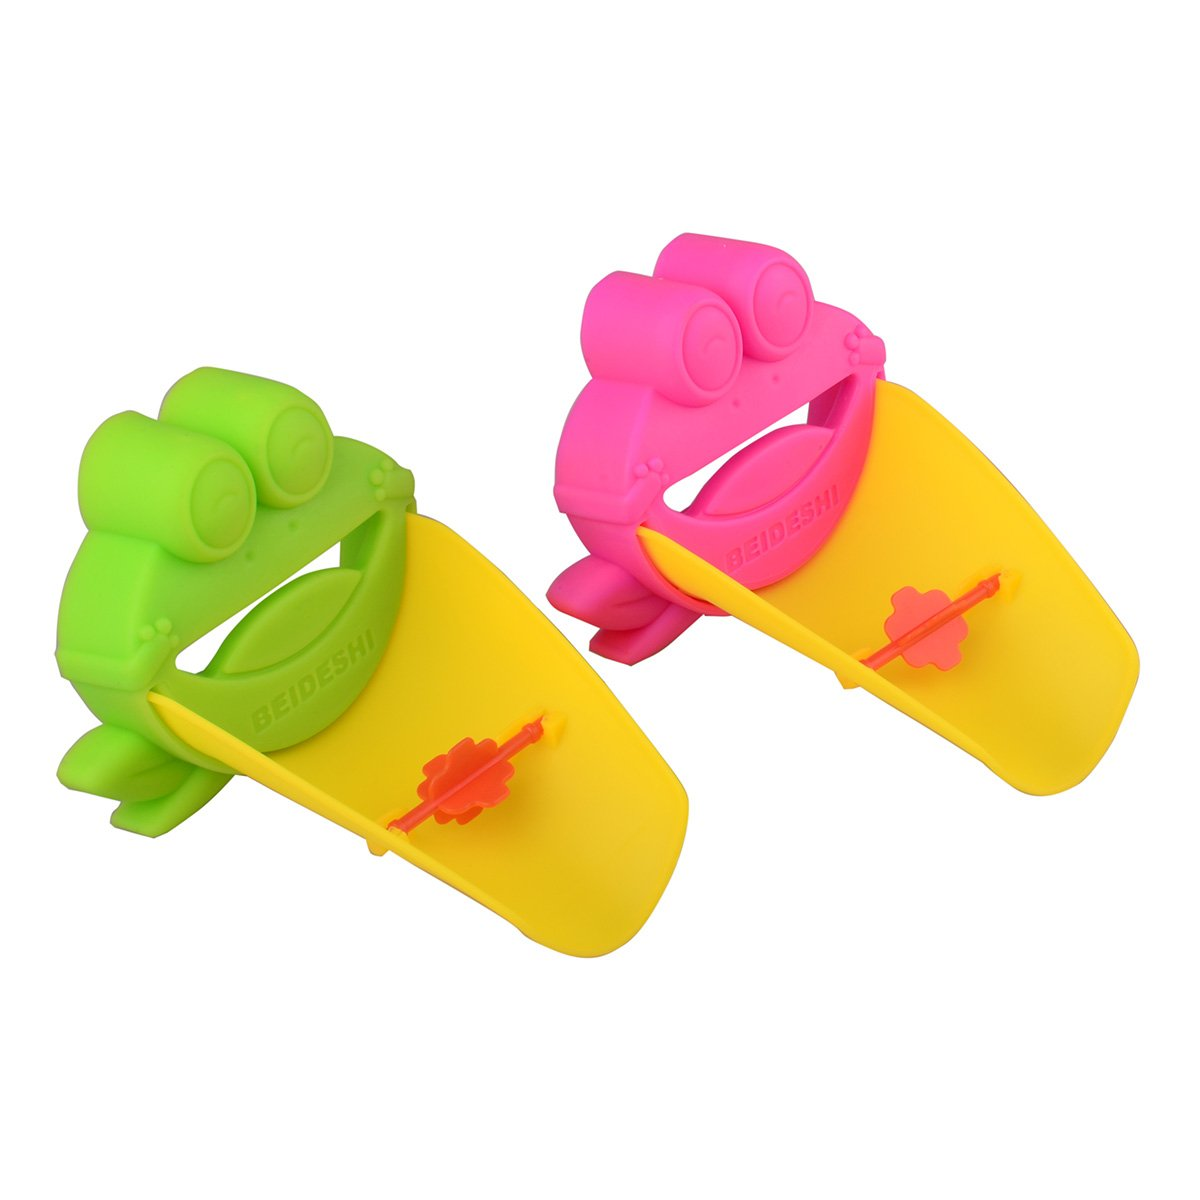 Zelta 2 Pieces Frog Faucet Extender with Diverter Water Tape Extension for Toddlers Kids Children Zeltababy